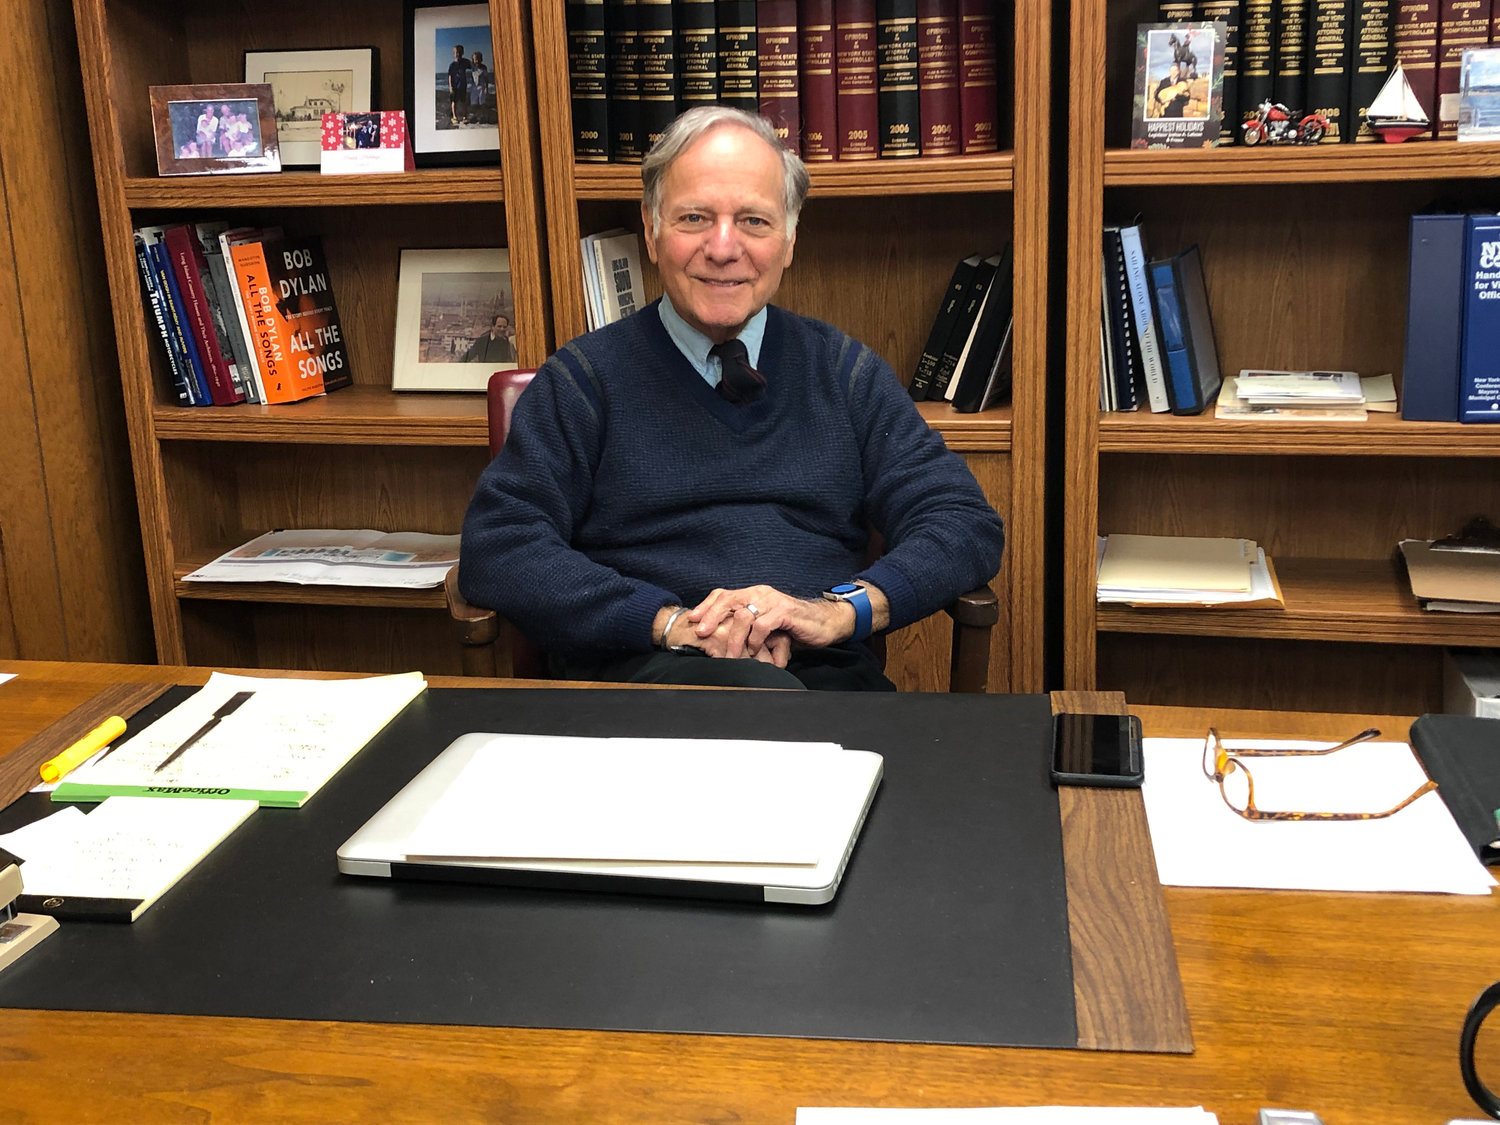 Natale Masonry Mayor Shares What S In Store For Bayville In 2019 Herald